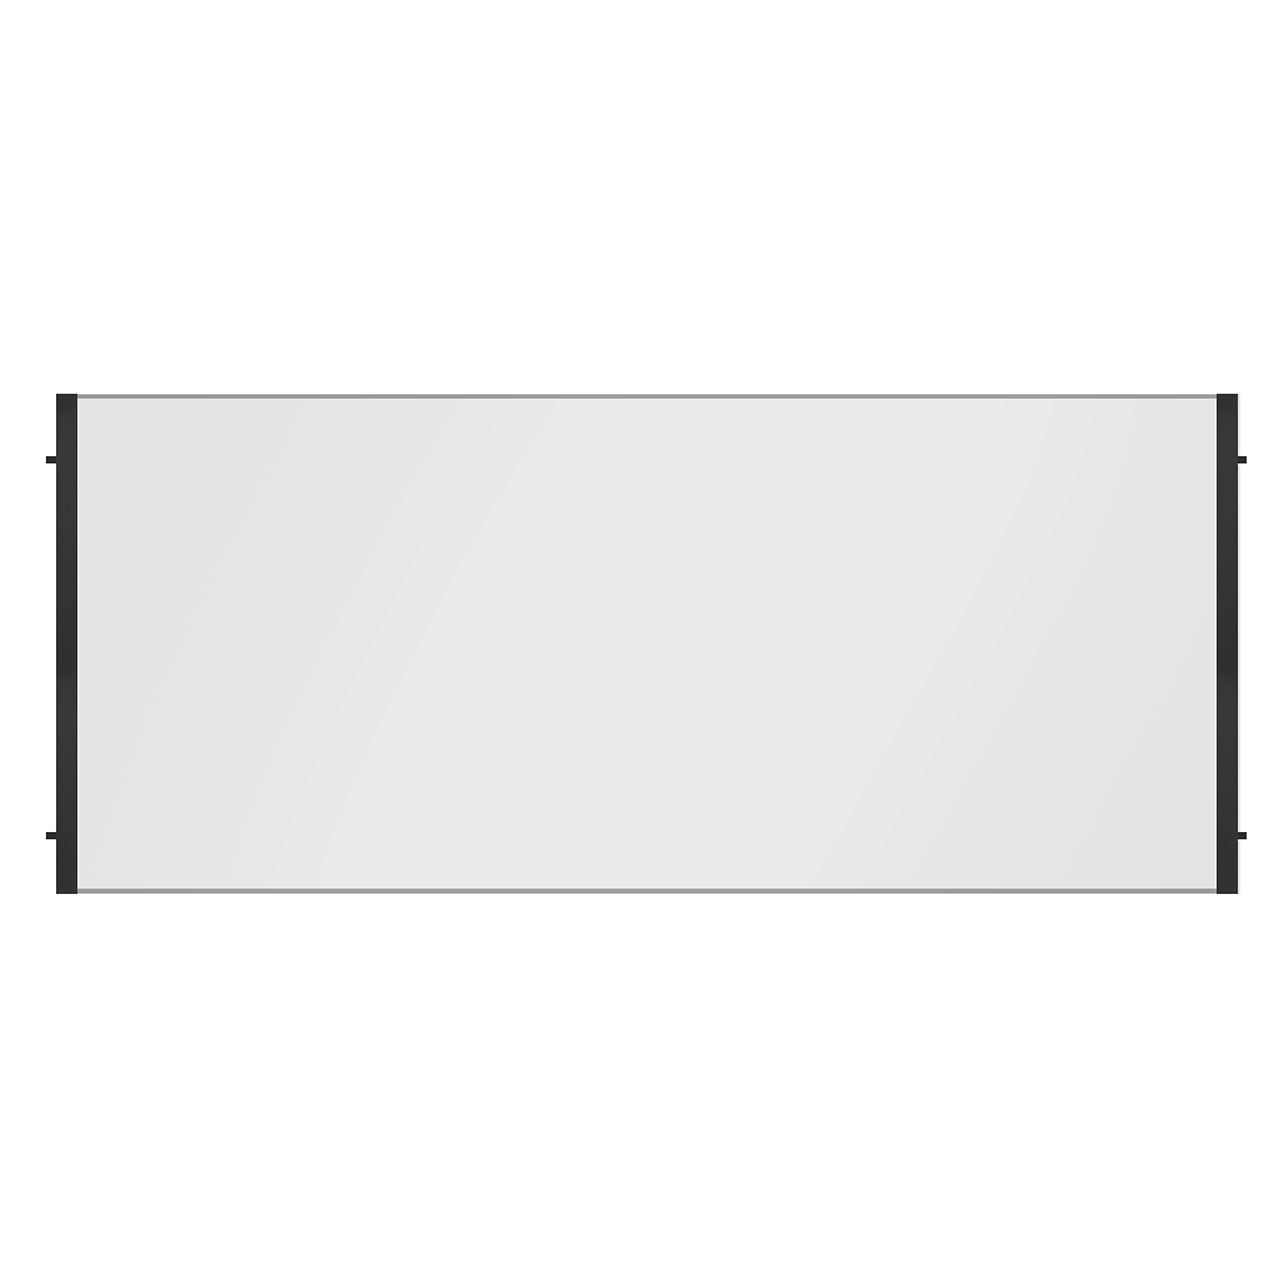 Dimplex GBF1500-GLASS Glass Pane for Opti-Myst Pro 1500 Firebox